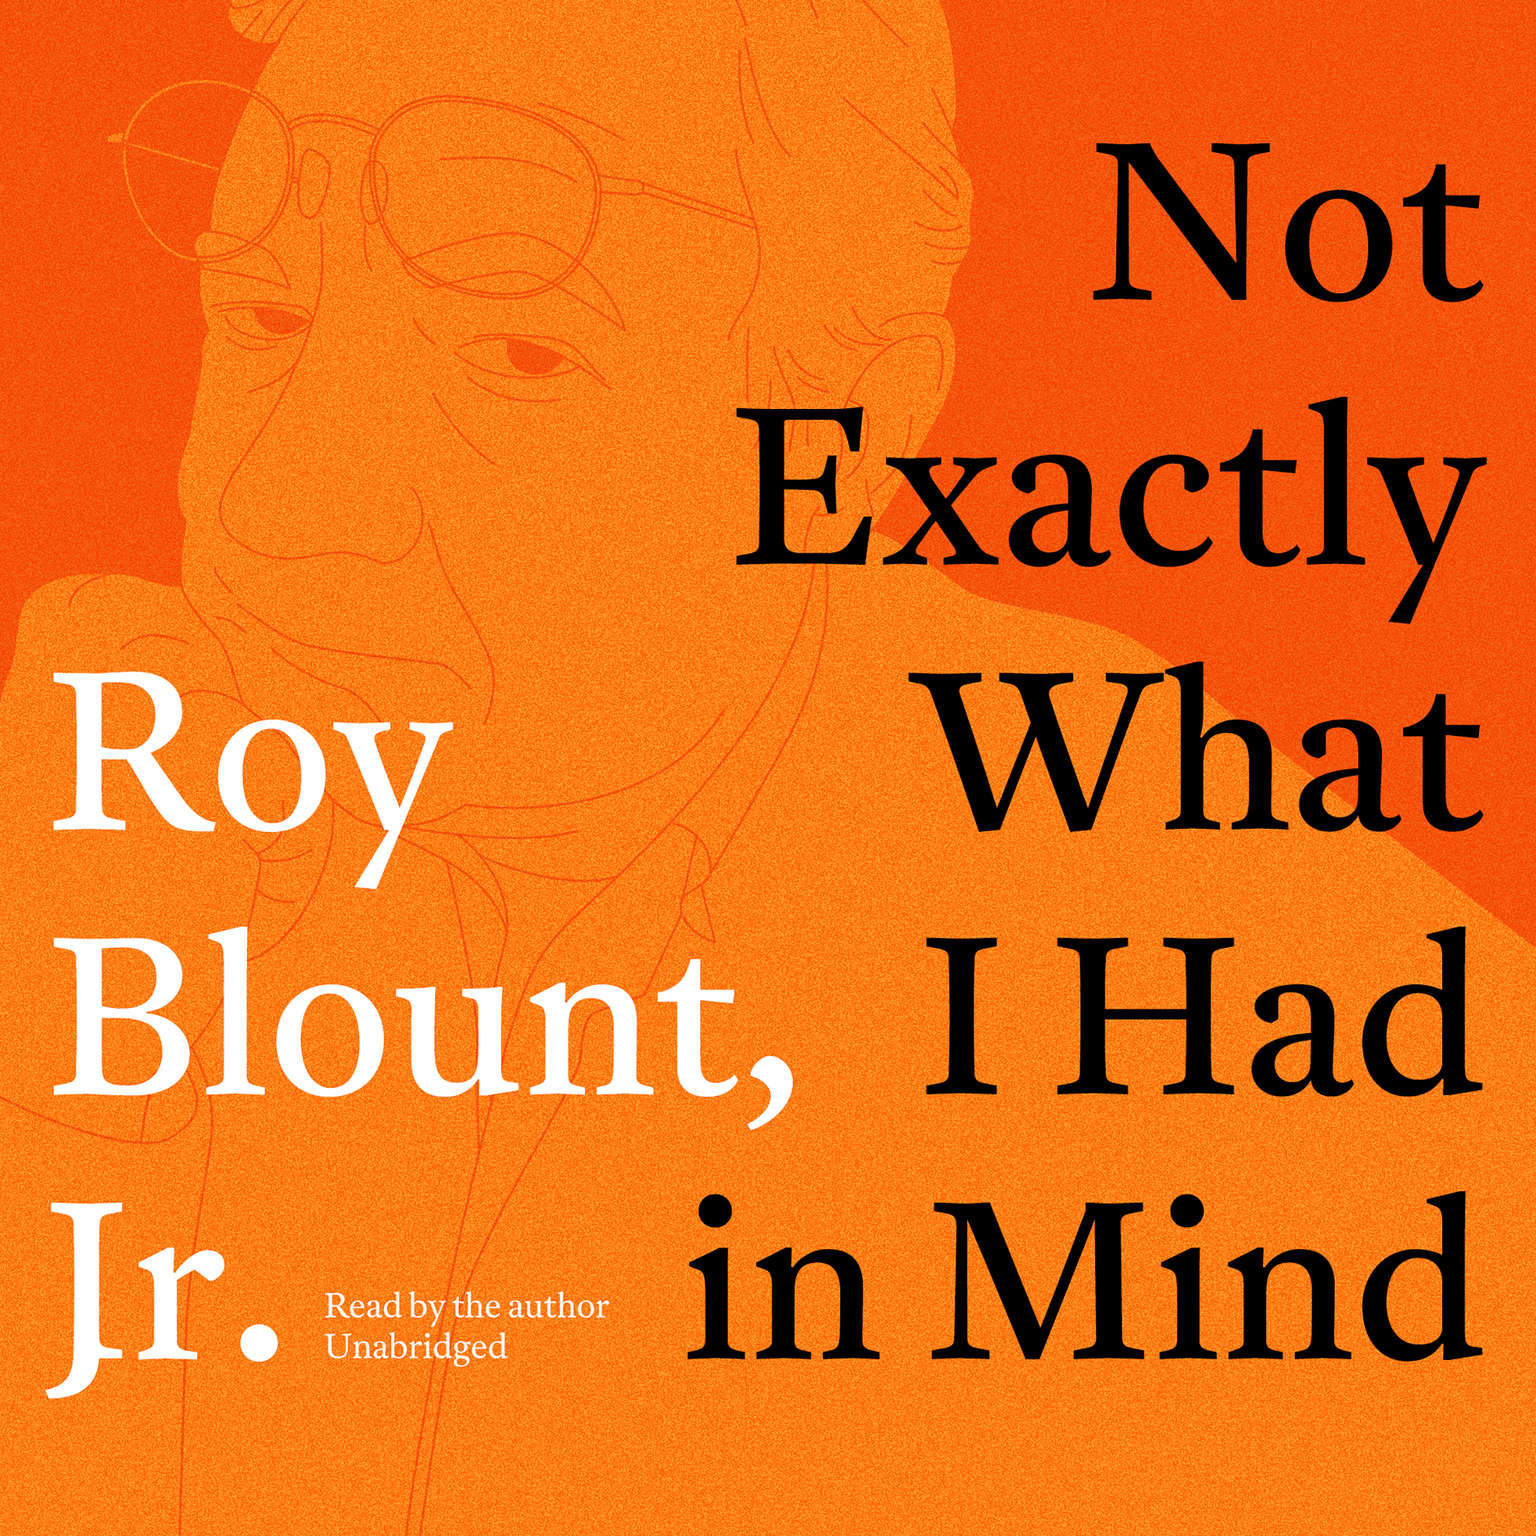 Exactly What You Had In Mind: Not Exactly What I Had In Mind - Audiobook